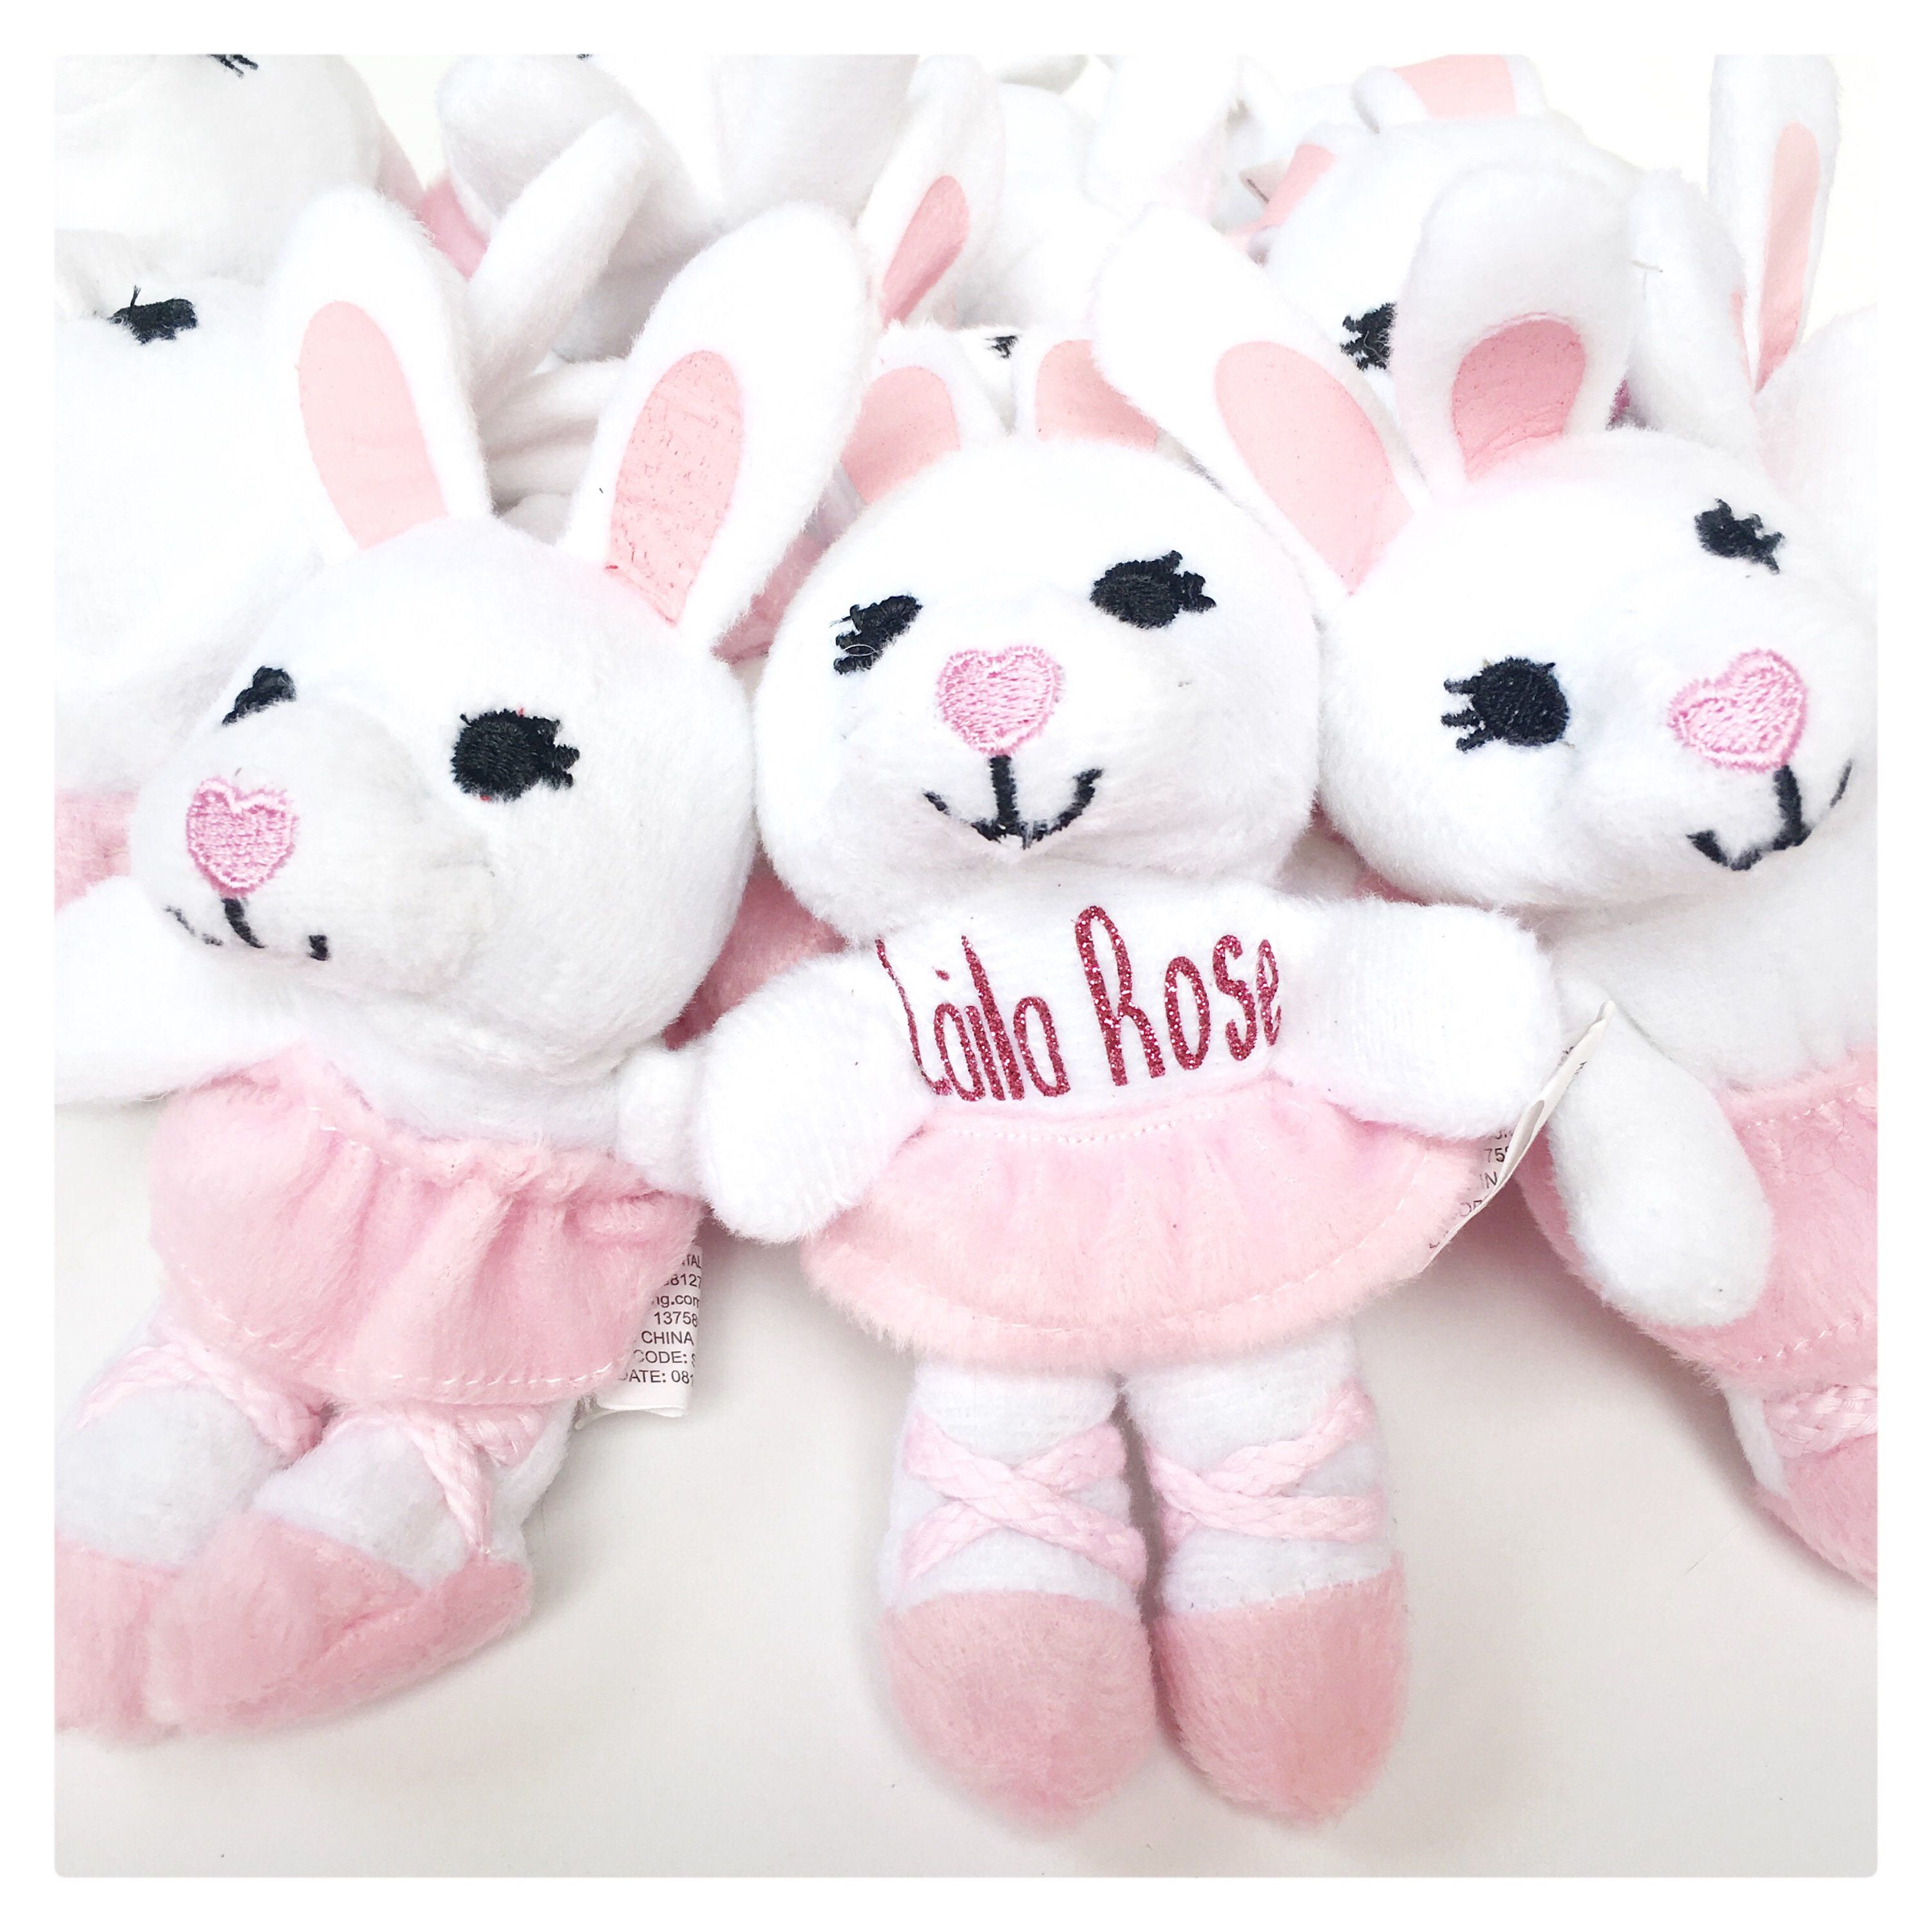 Personalized bunny easter bunny easter basket gifts baby easter personalized bunny easter bunny easter basket gifts baby easter gifts girl bunny sheep plushie bunny plushie stuffed animals negle Image collections